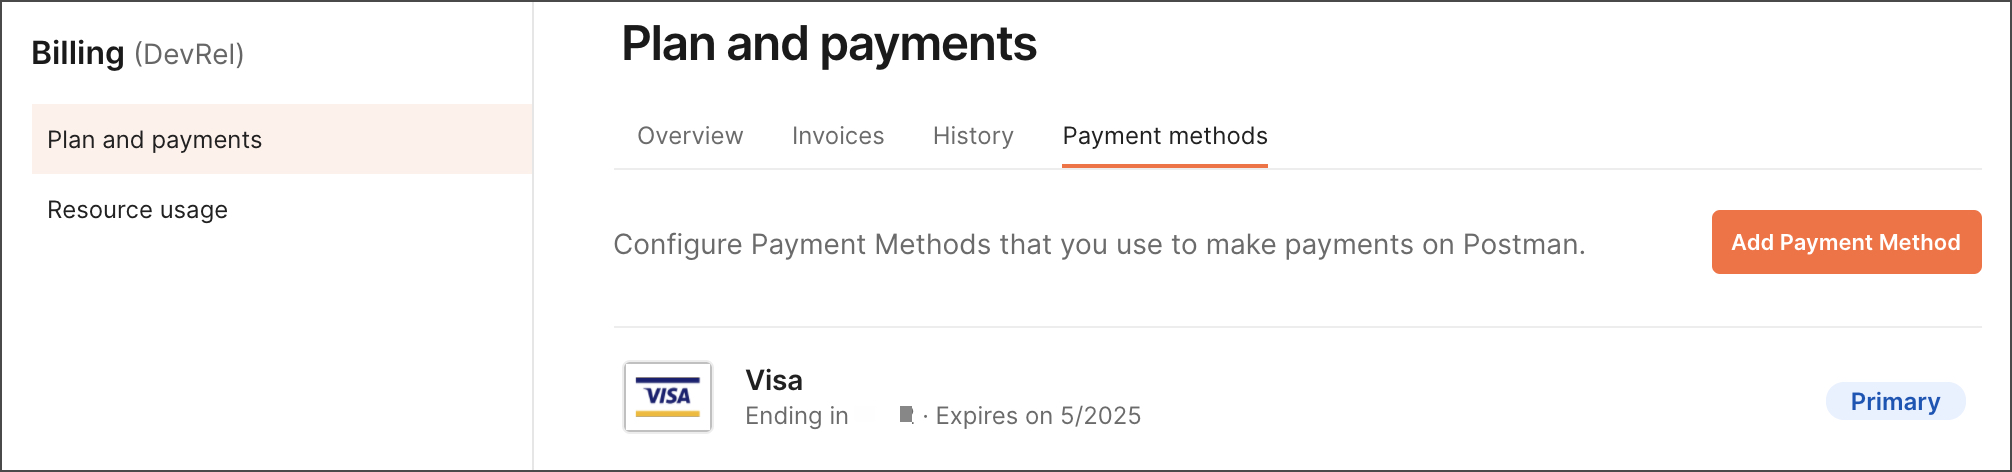 Payment methods view